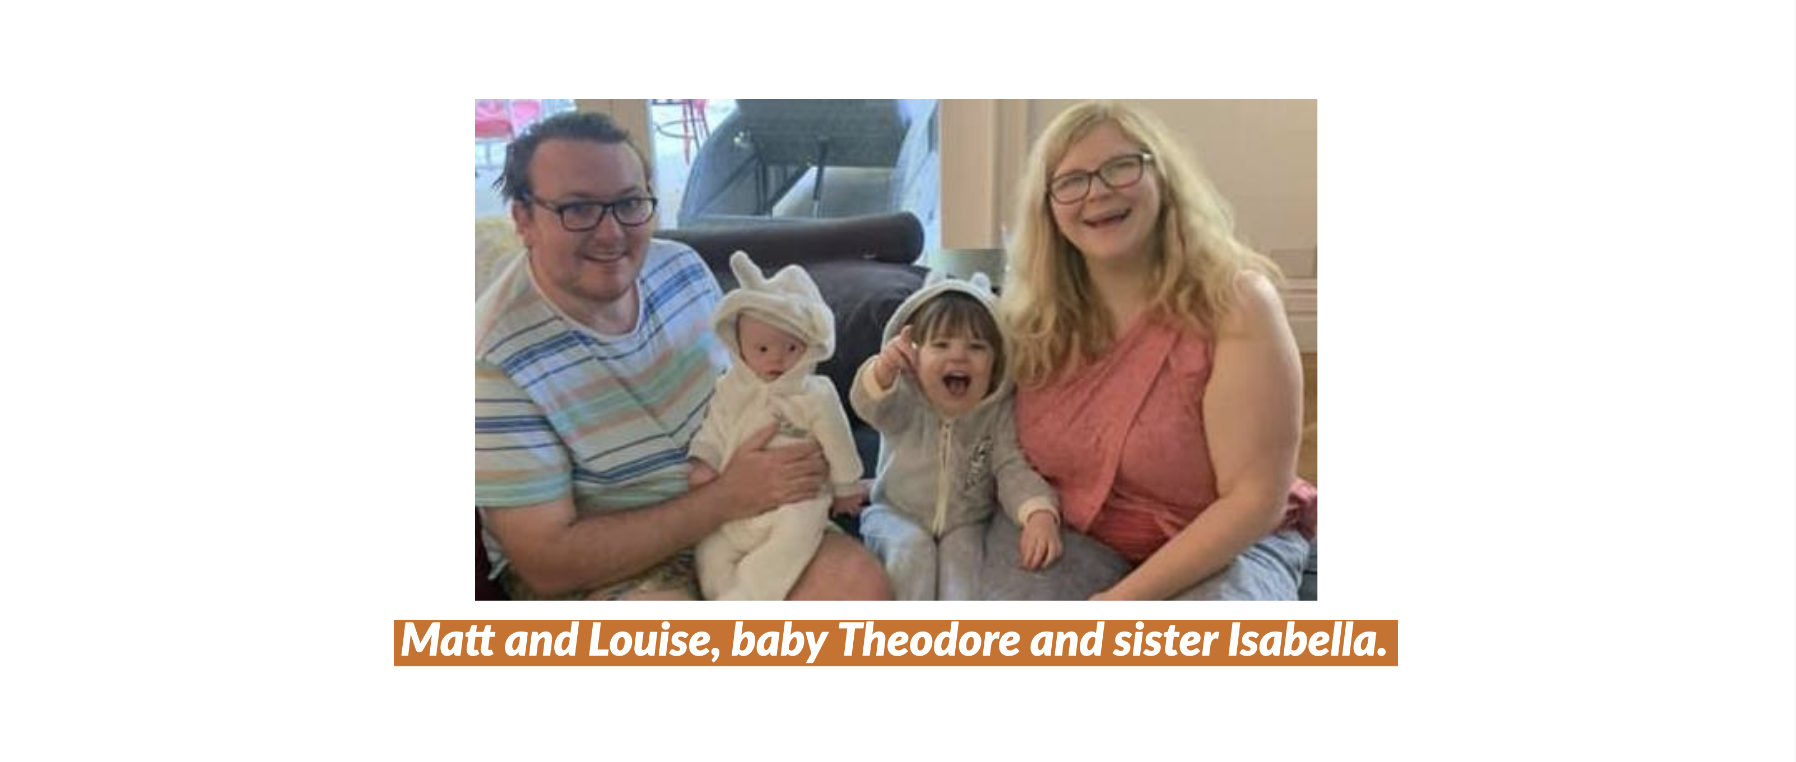 Matt and Louise, baby Theodore and sister Isabella.